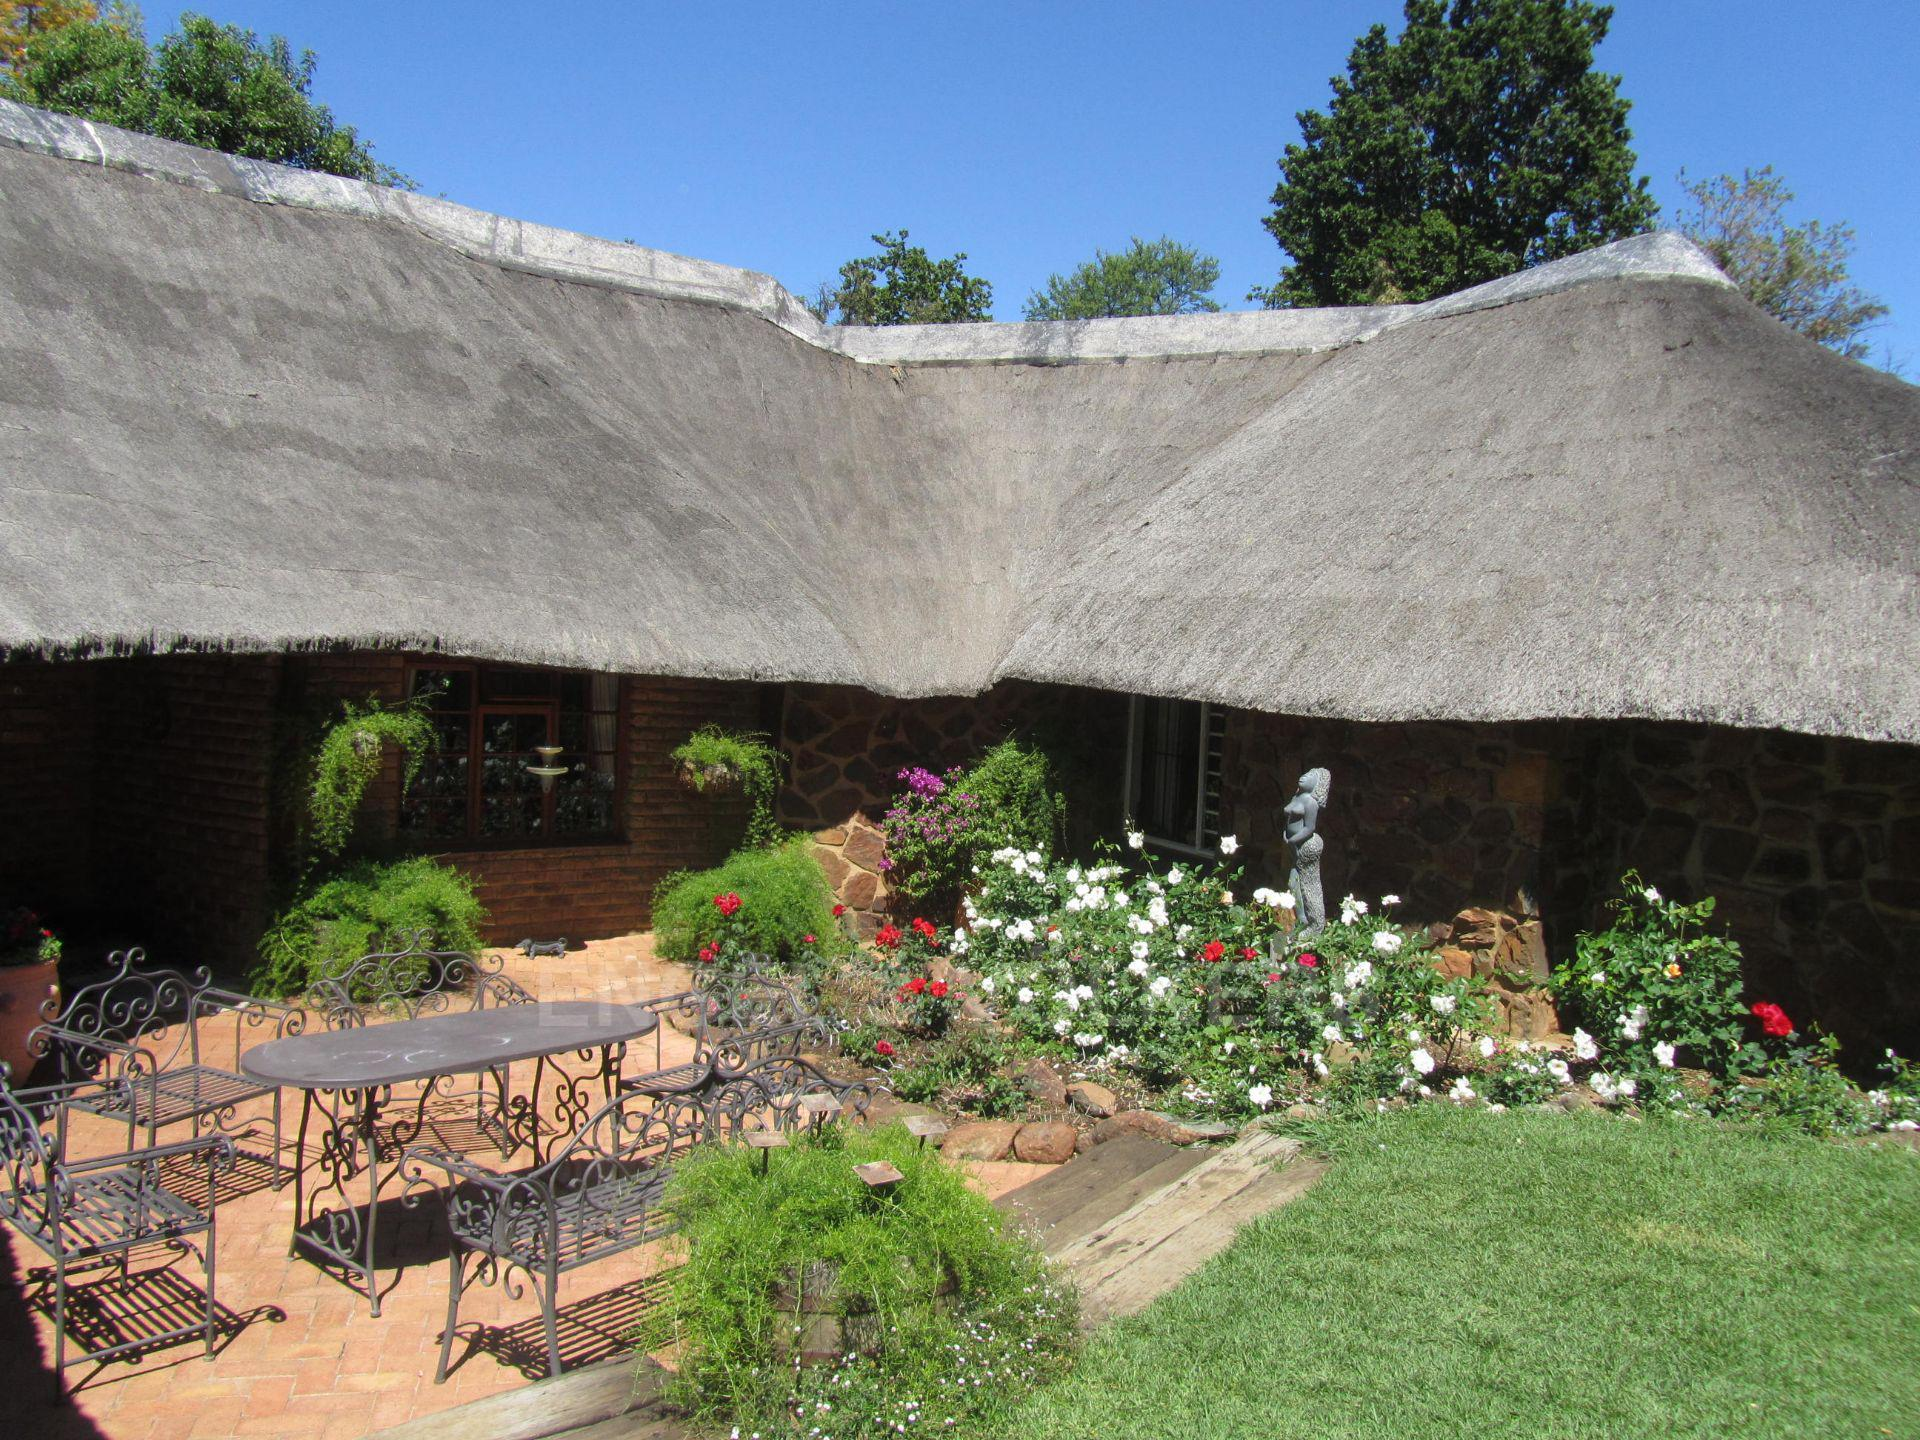 Land in Hartbeespoort Dam Area - front of house (3).JPG